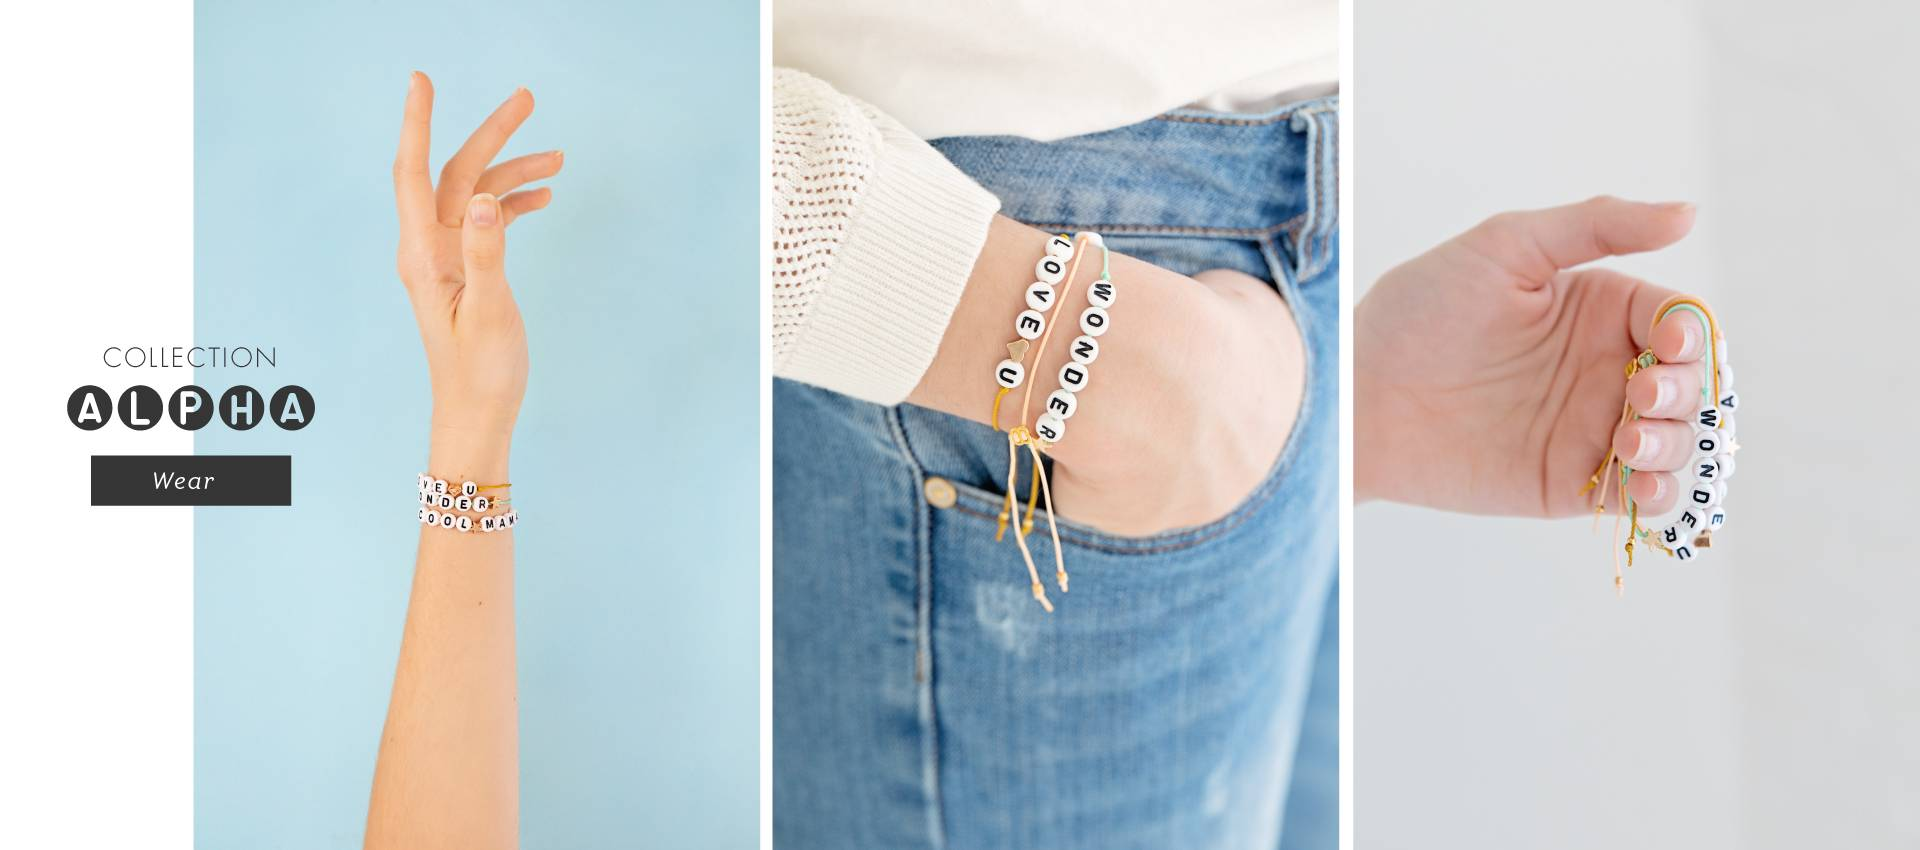 CAPSULE COLLECTION: 3 jewelry kits to create colorful message bracelets for the summer